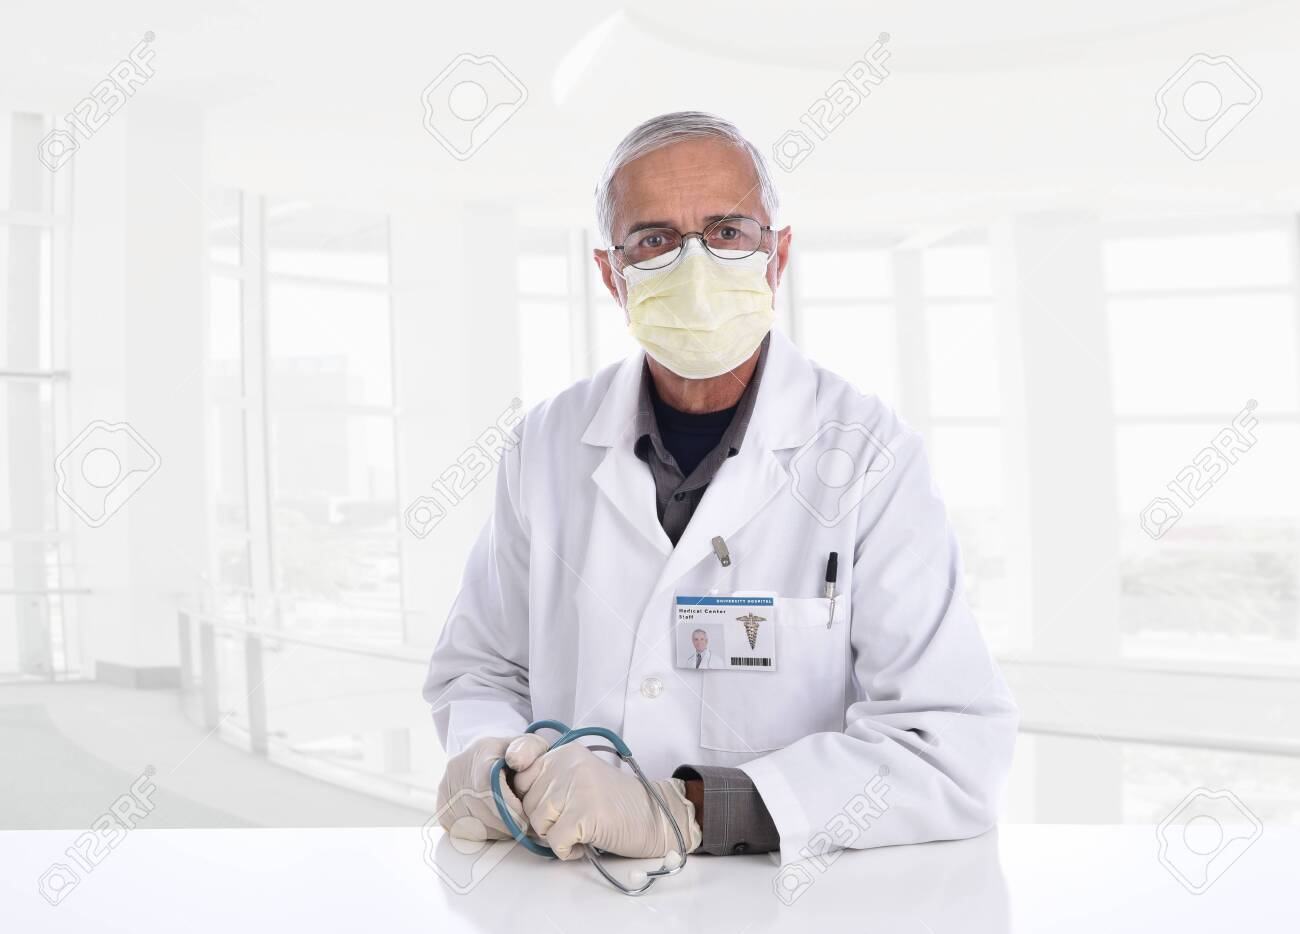 Medical Professional wearing a surgical mask, gloves and holding a stethoscope in a modern office setting. ID Badge is computer generated. - 150563435